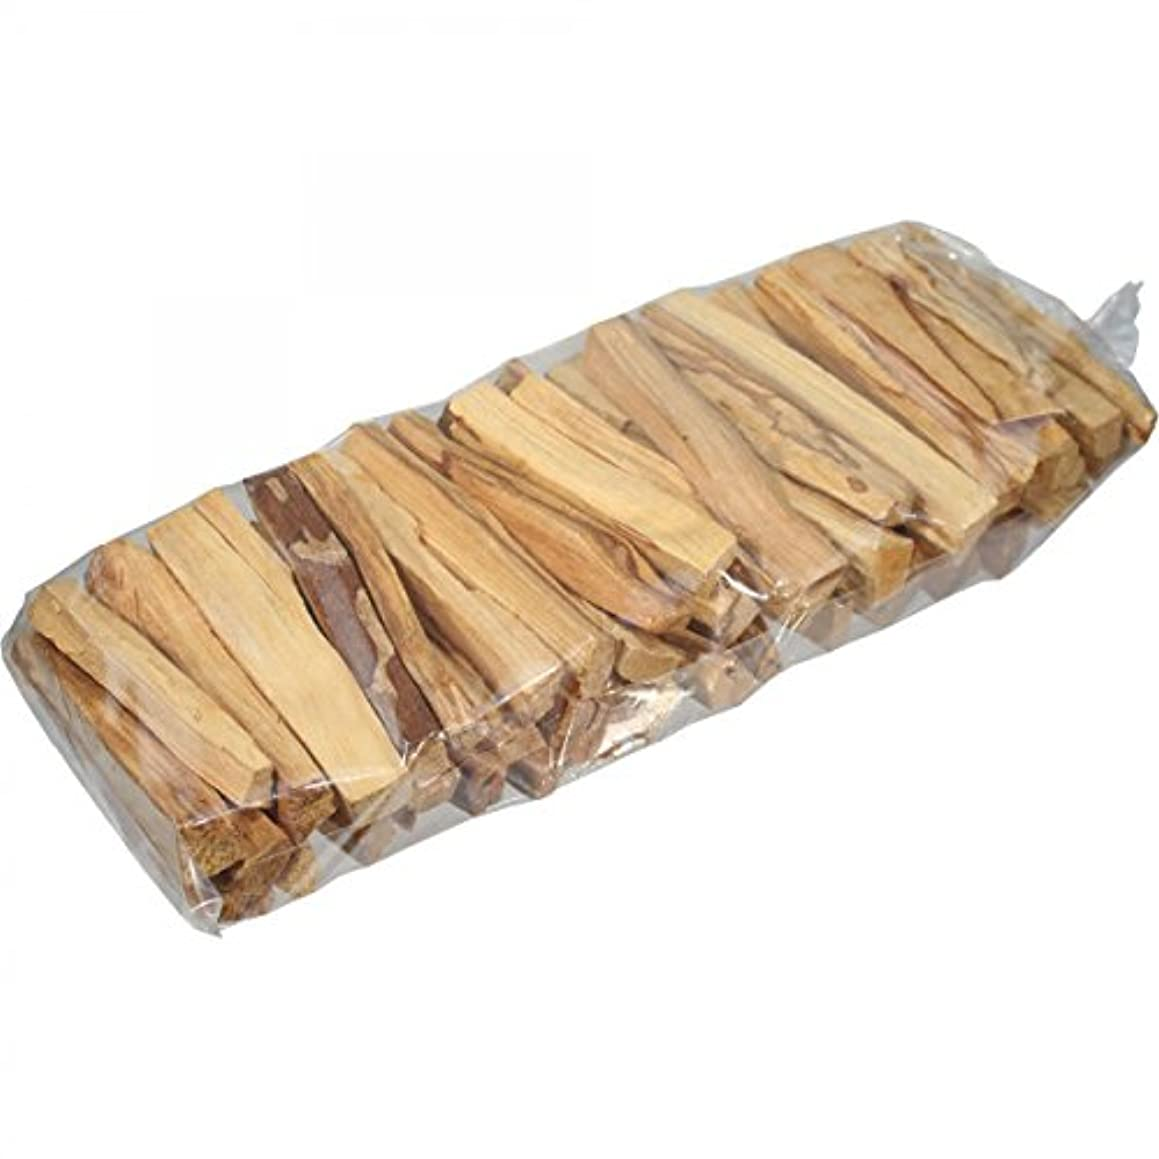 踊り子性別地理Palo Santo Incense Sticks – エクアドル 1 lb, -, Roll I02b